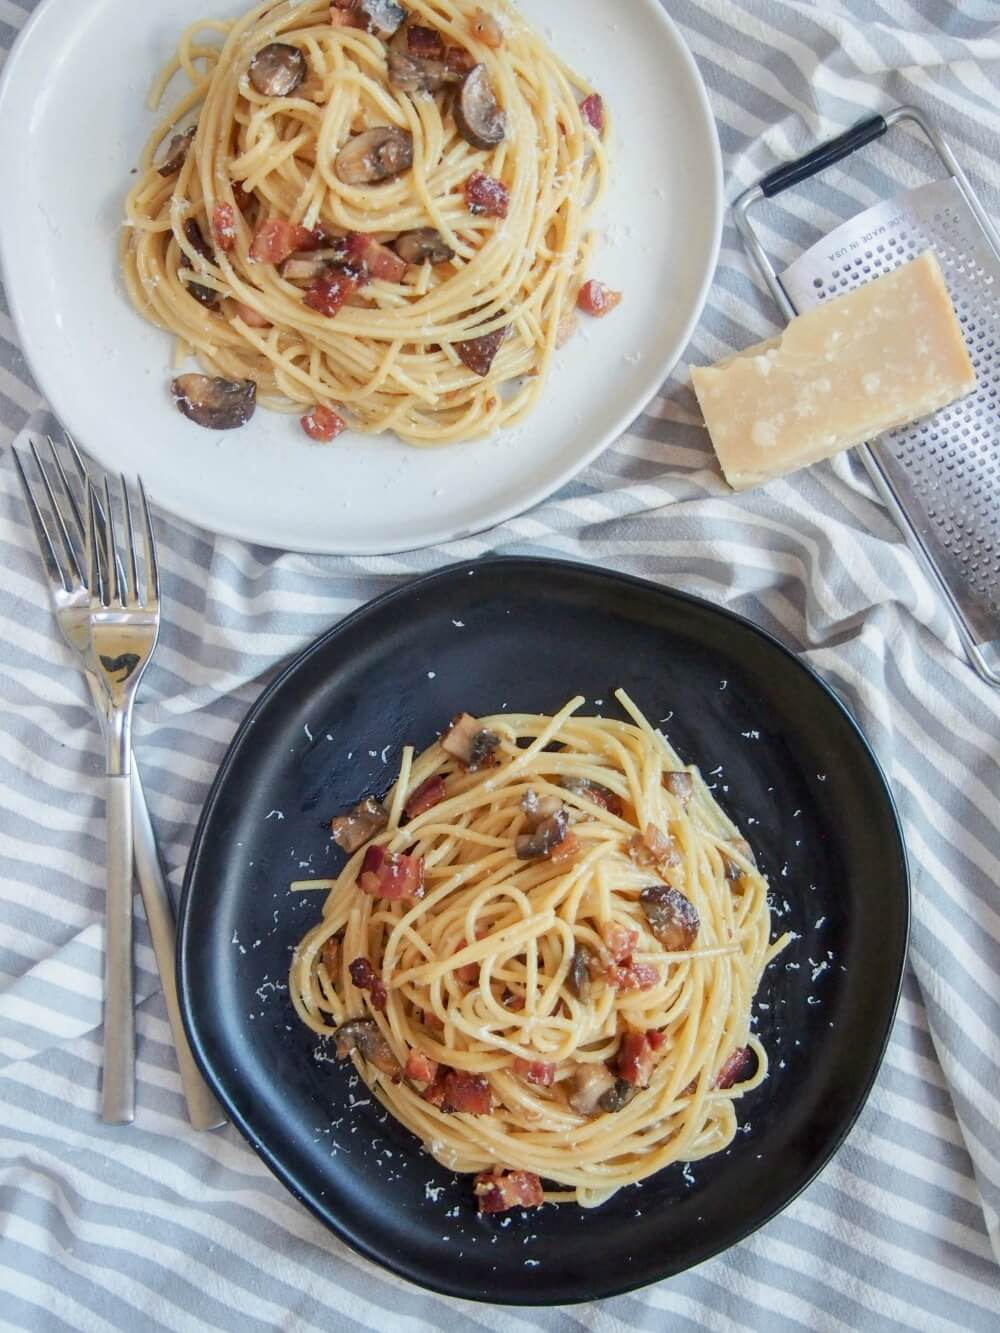 Spaghetti alla carbonara with mushrooms